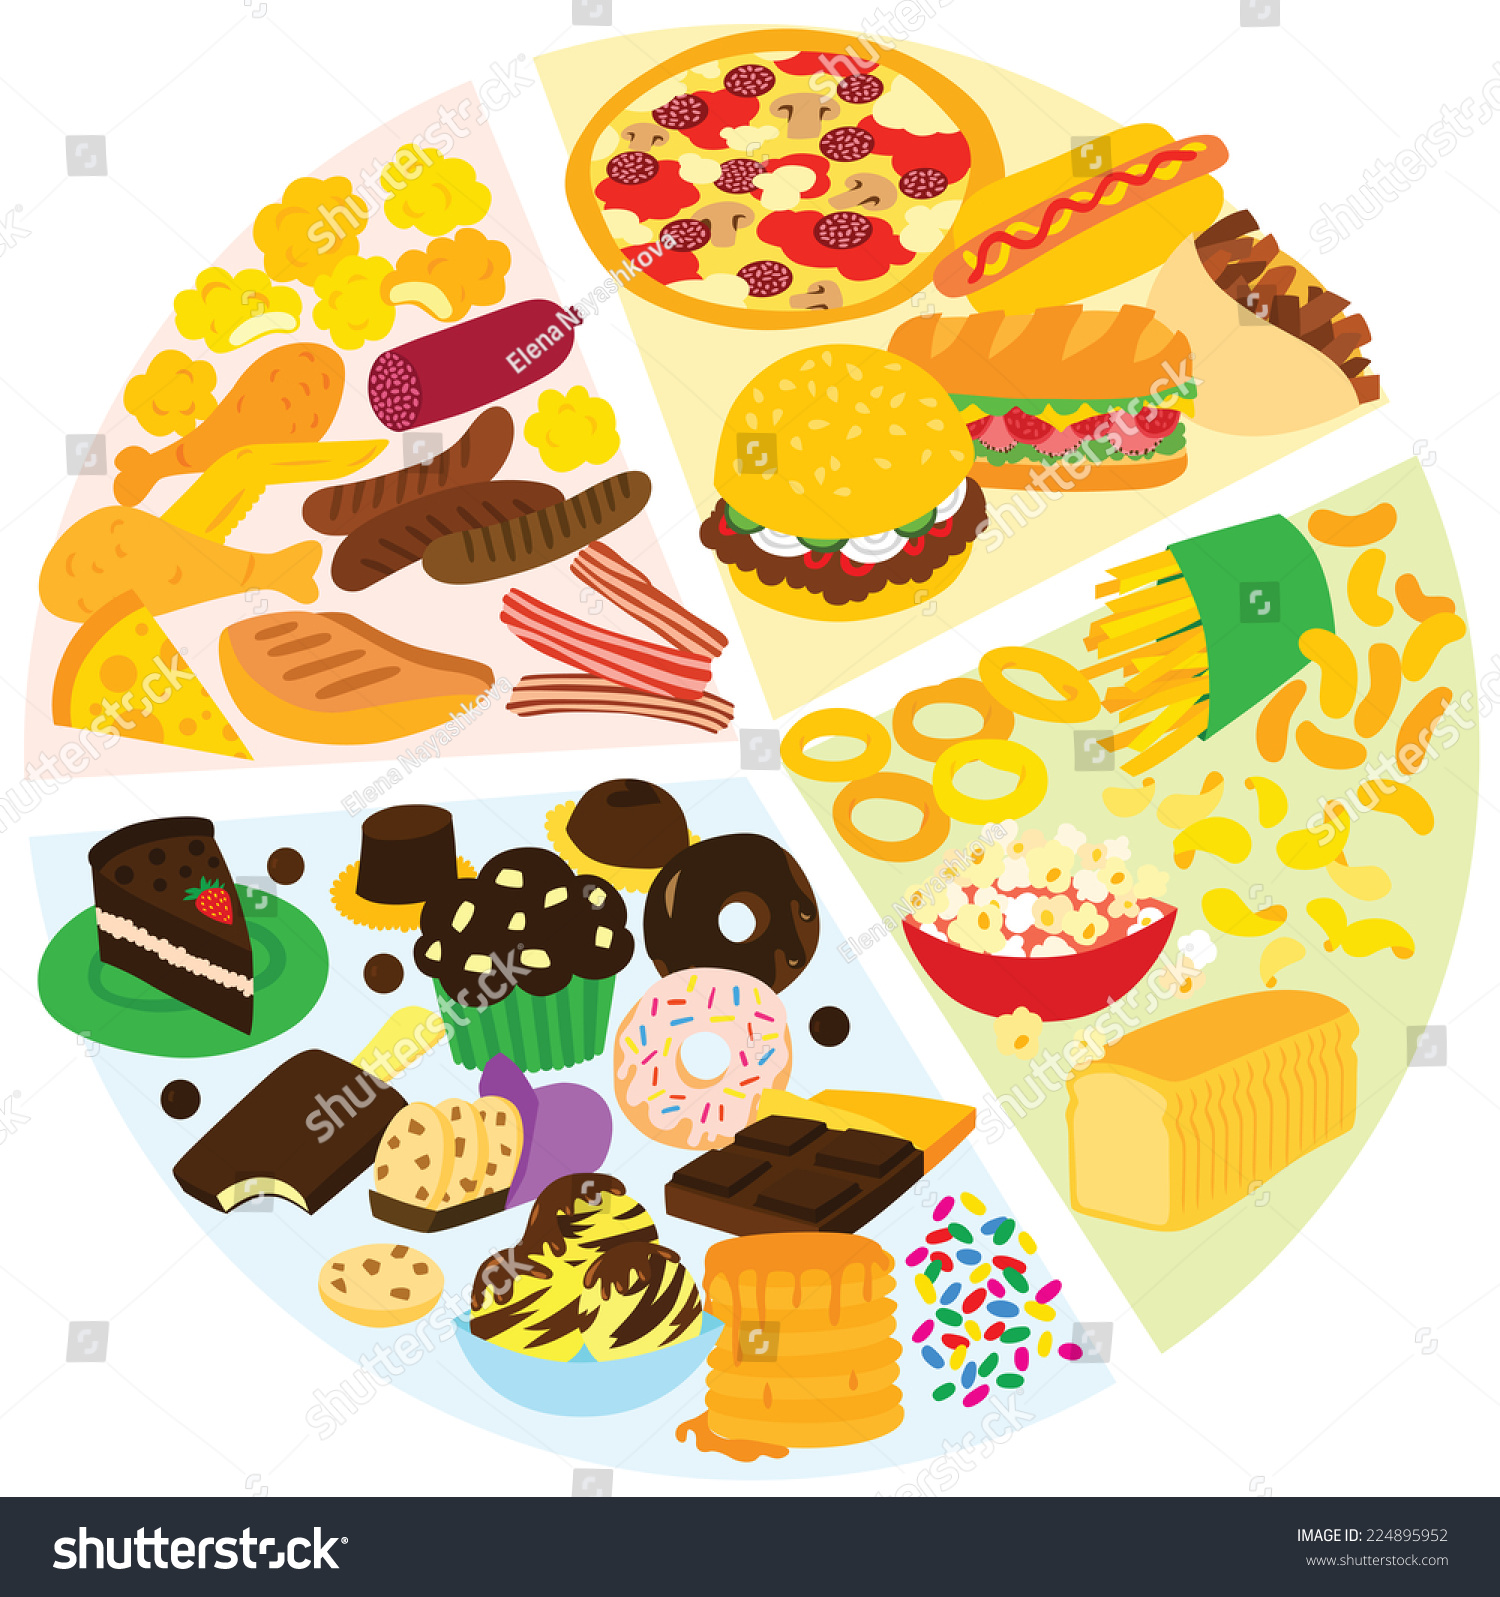 Unhealthy eating pie chart stock vector 224895952 shutterstock unhealthy eating pie chart nvjuhfo Choice Image